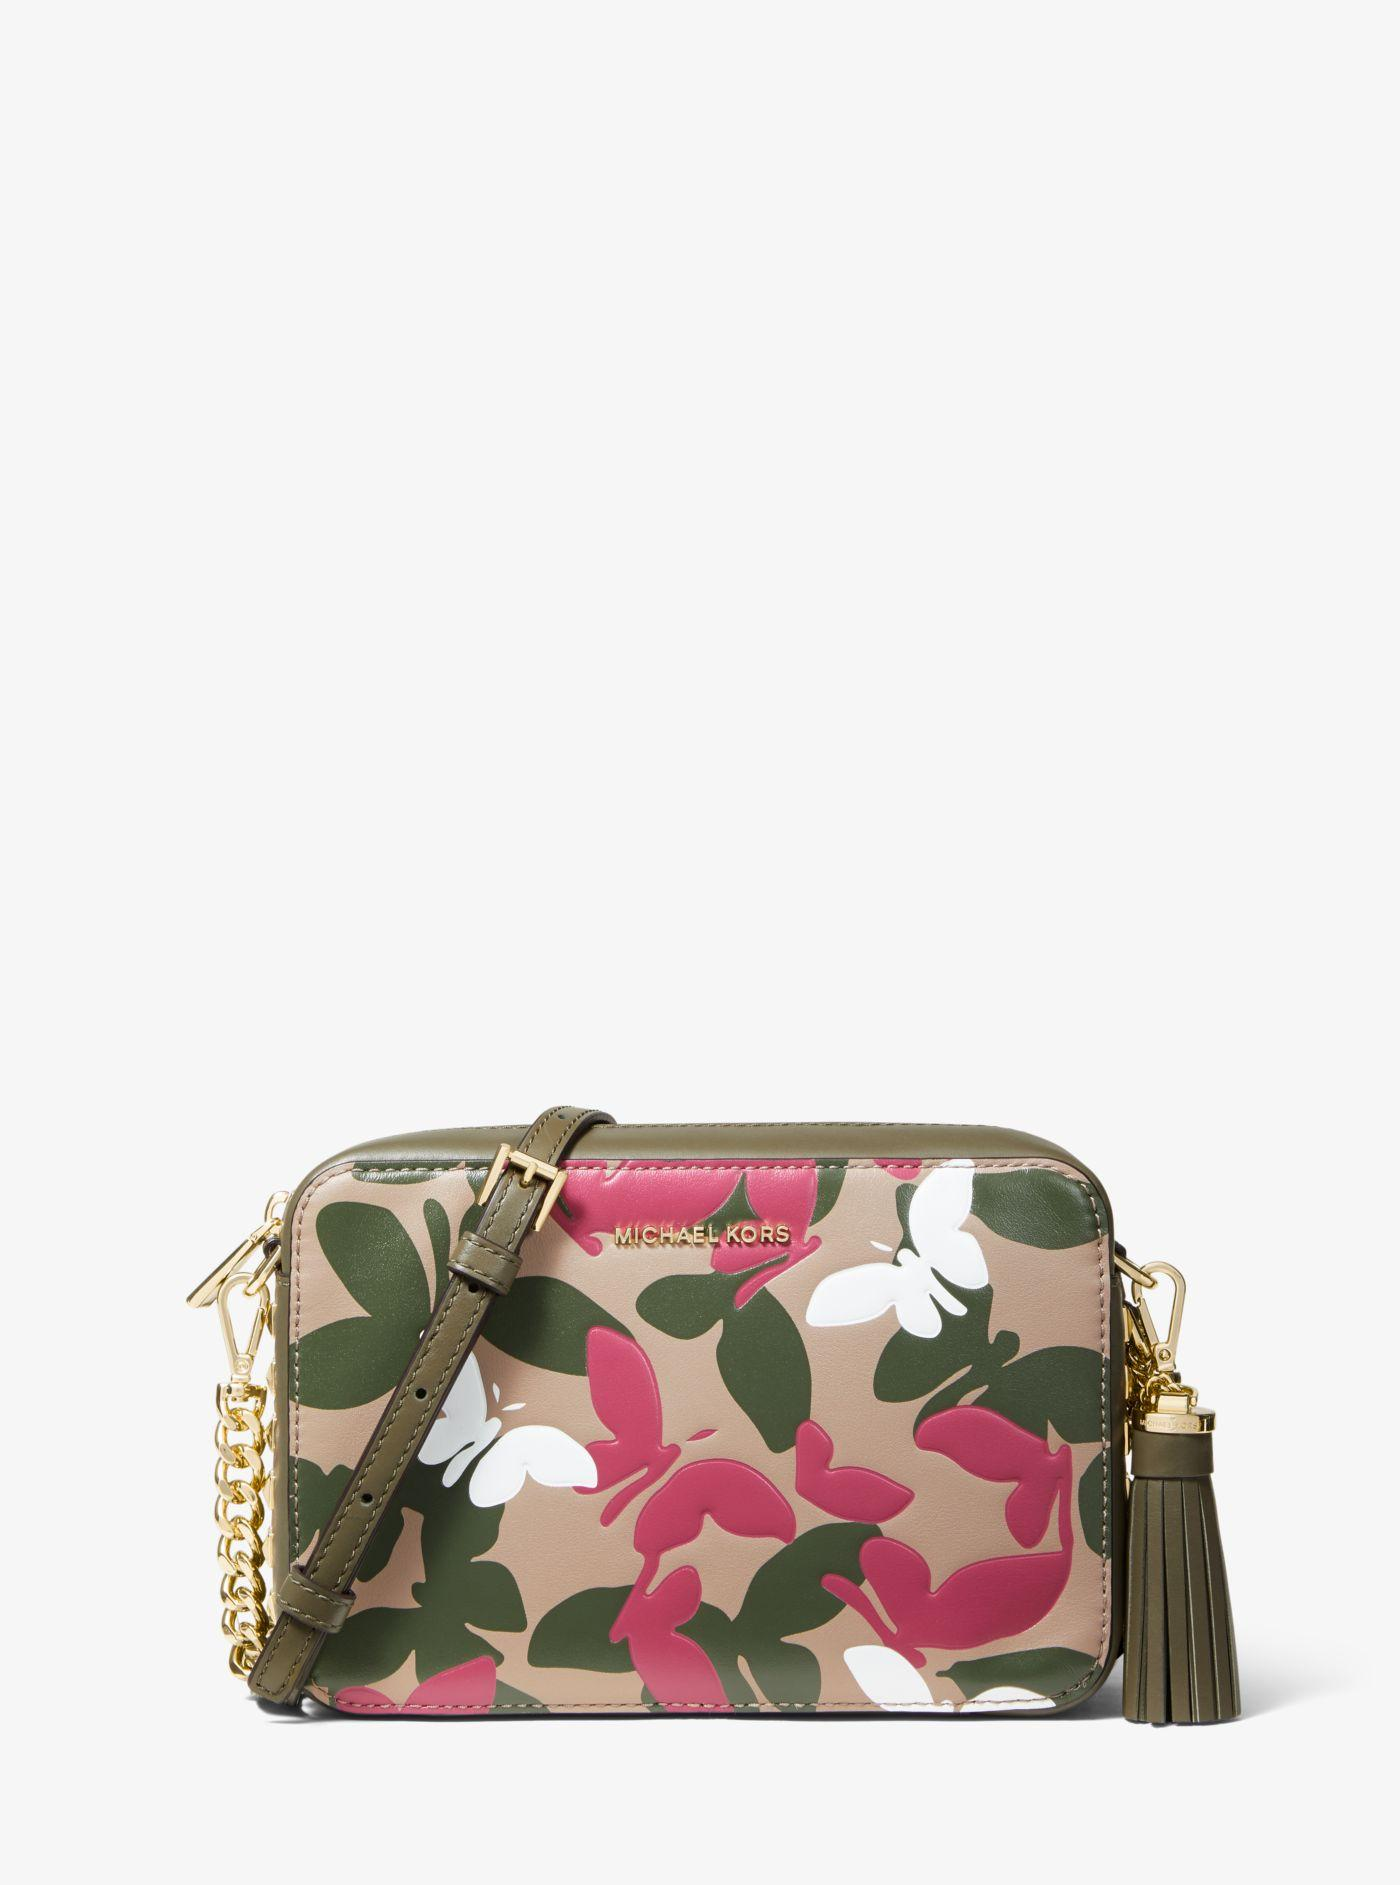 deb96d02e847 Michael Kors - Multicolor Ginny Medium Butterfly Camo Leather Crossbody -  Lyst. View fullscreen